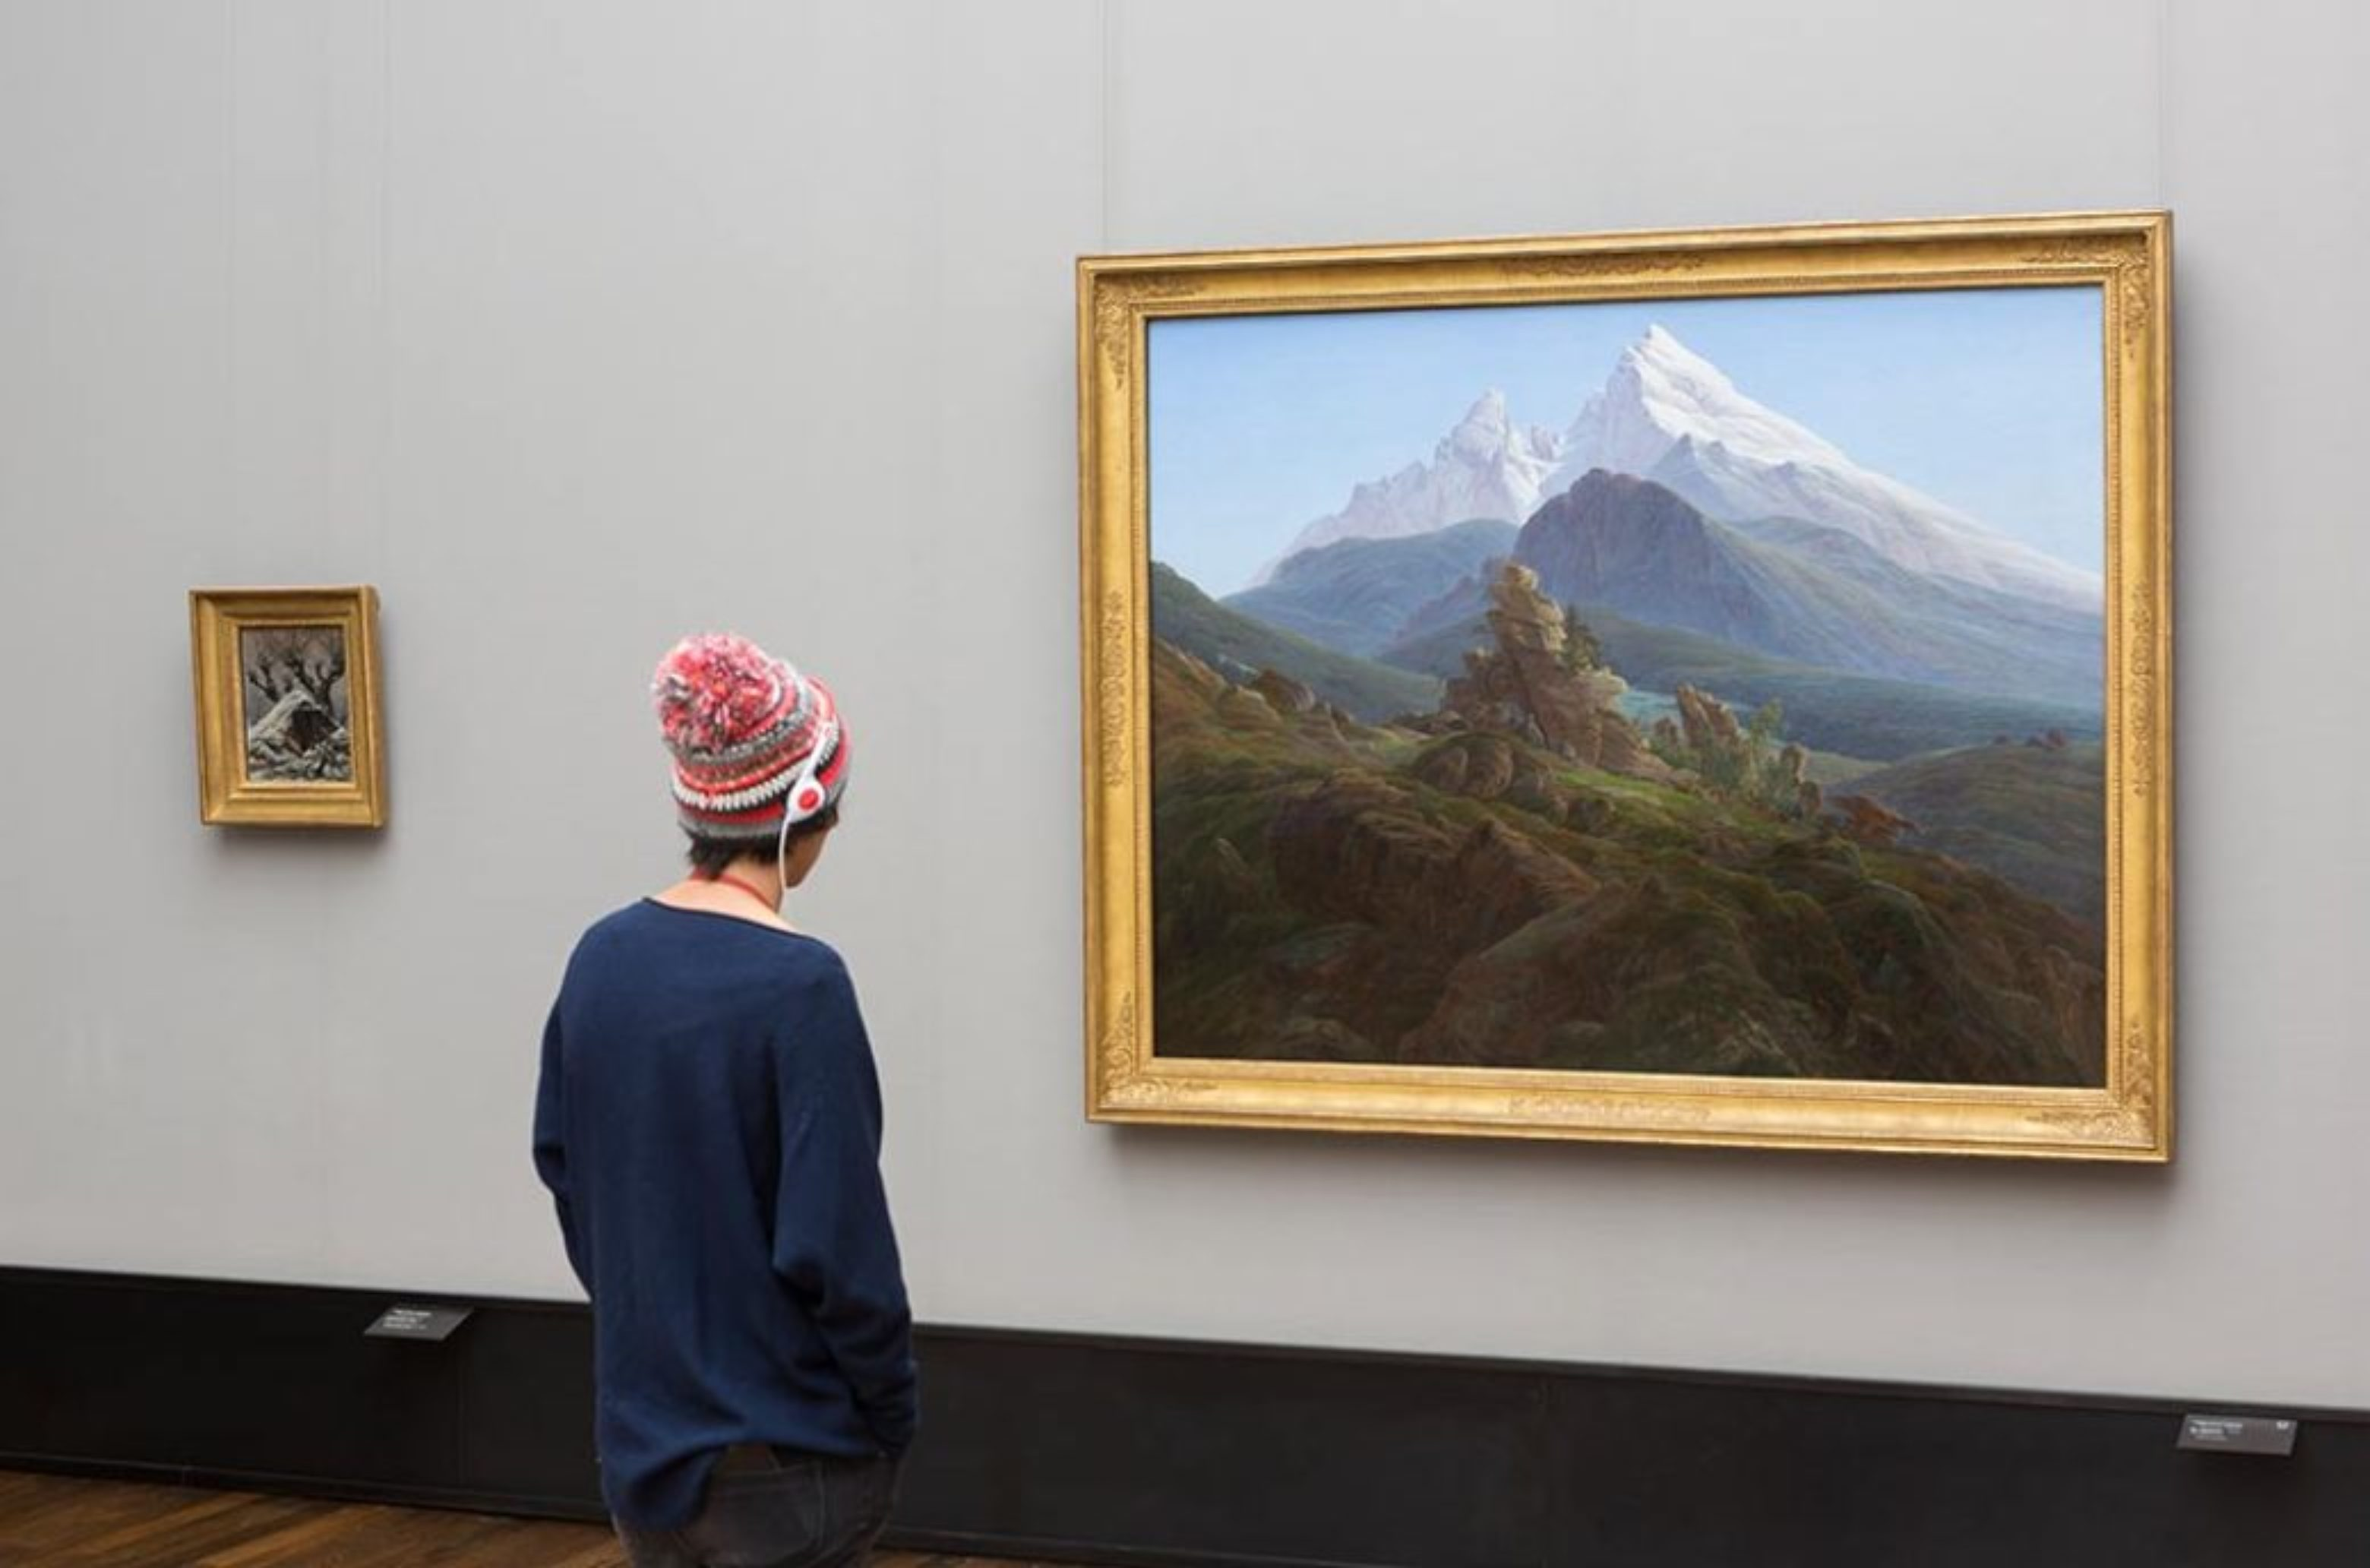 Young visitor in front of a painting by Caspar David Friedrich